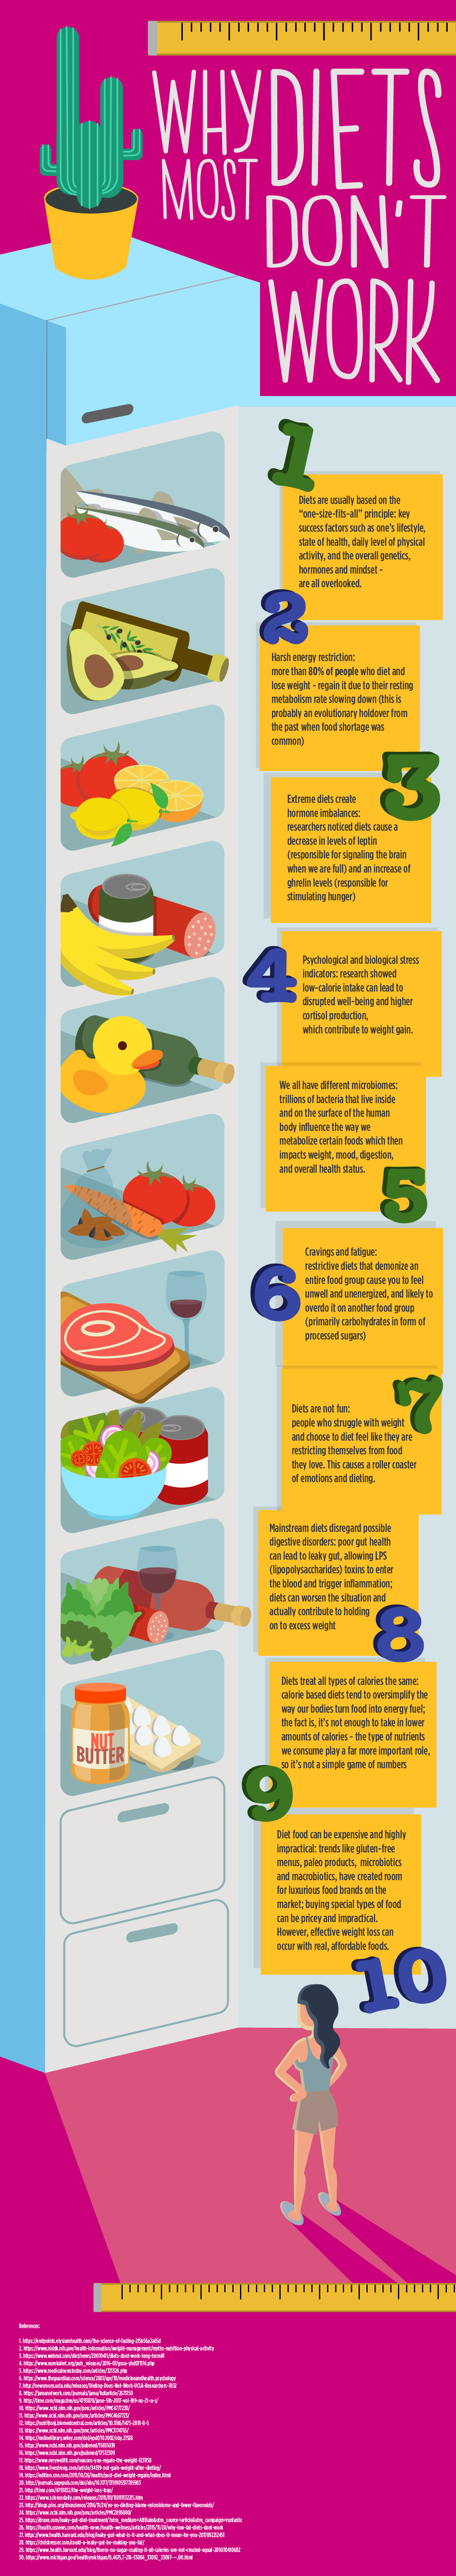 Why most diets don't work (2)